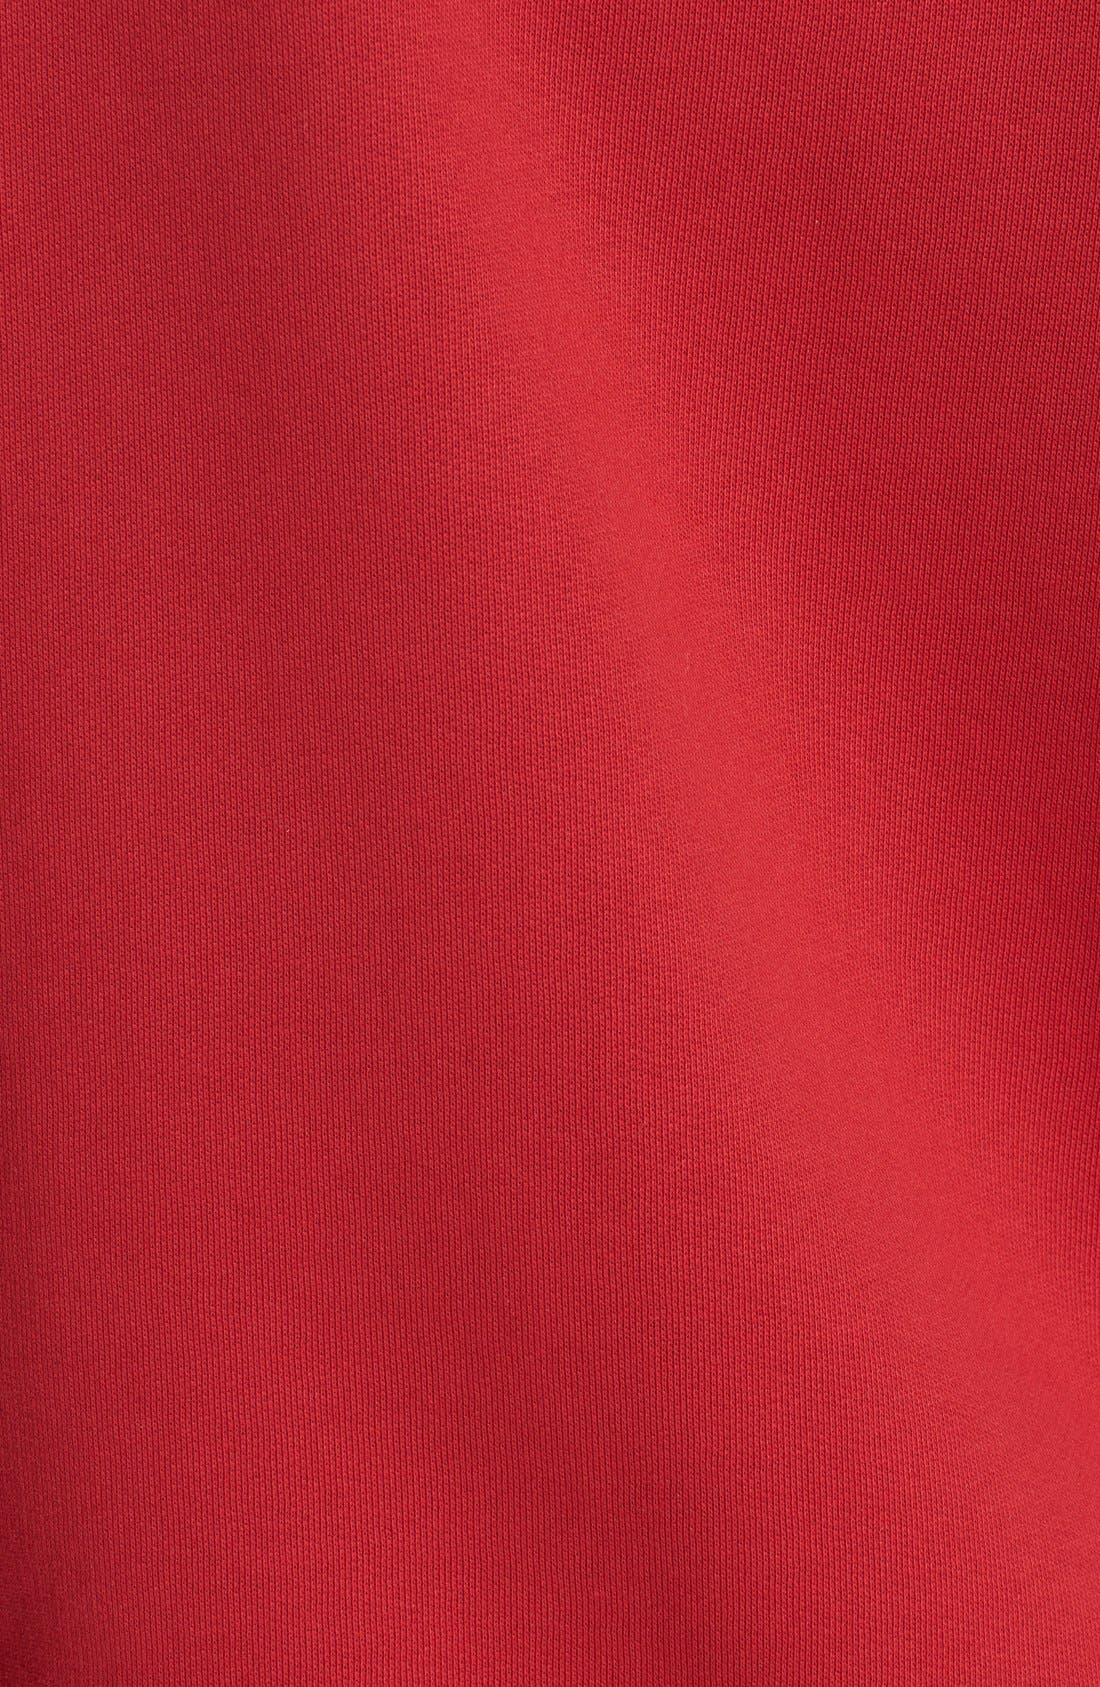 Check Print Hoodie,                             Alternate thumbnail 8, color,                             PARADE RED